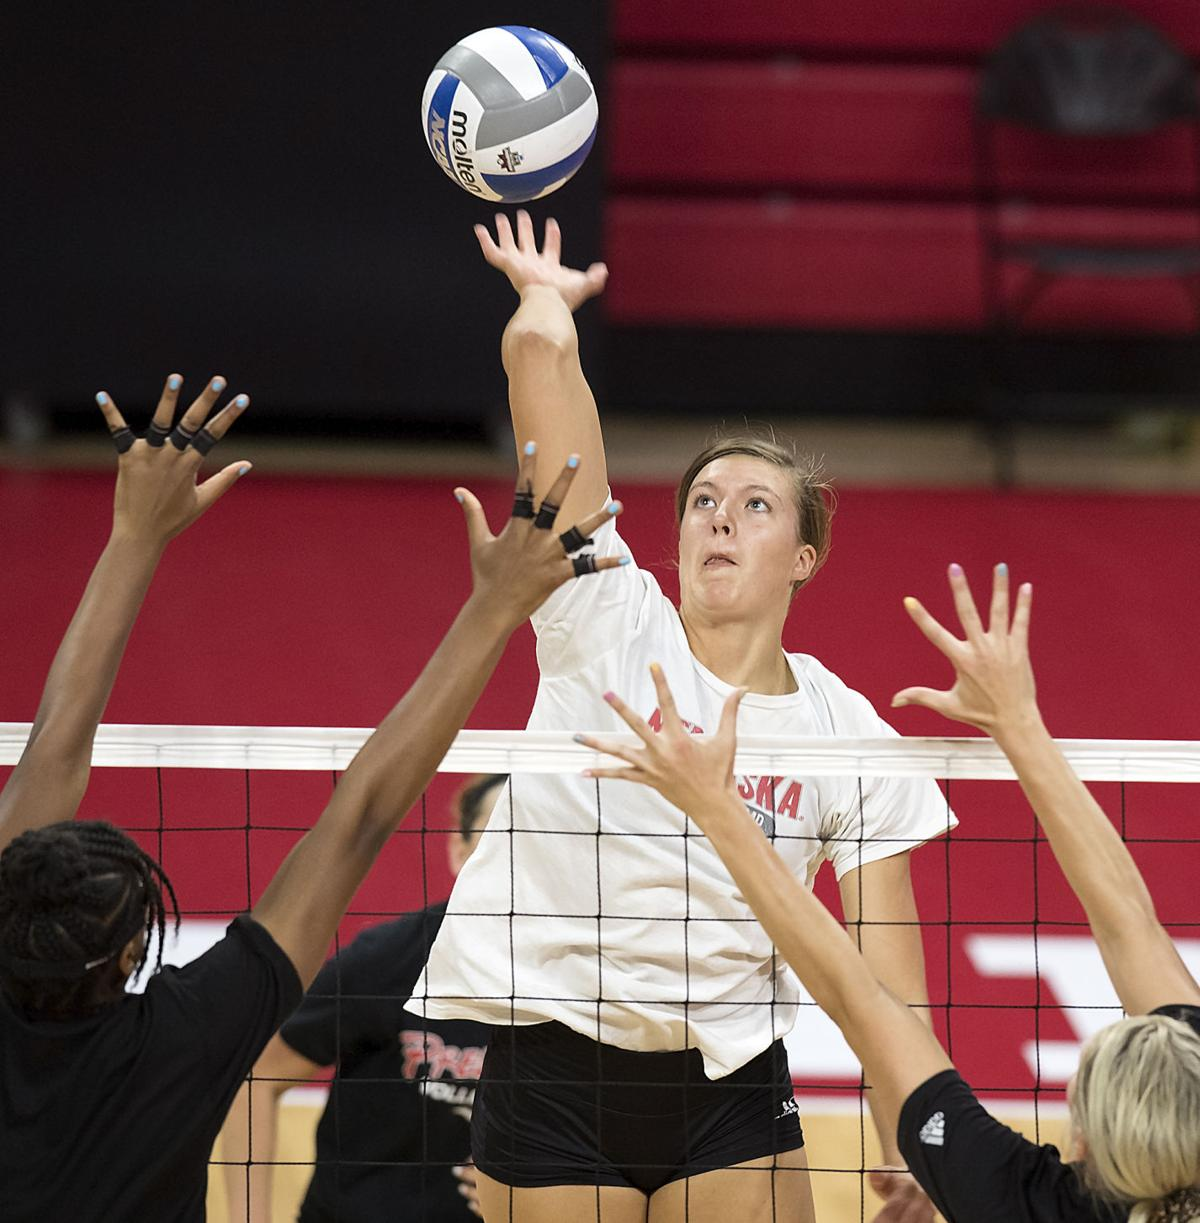 Date Set For Husker Volleyball Game Against Hawaii